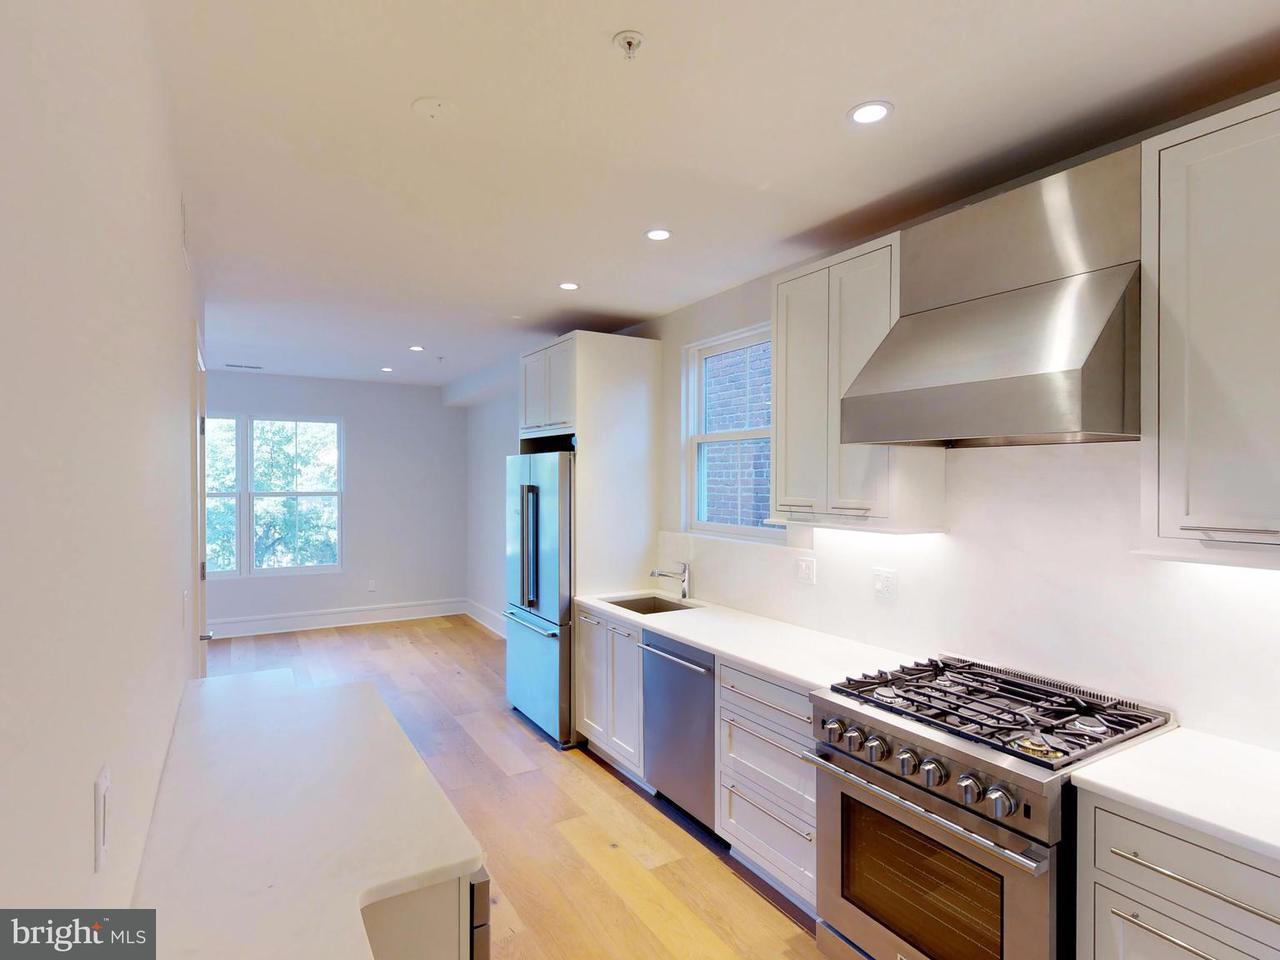 Condominium for Sale at 3211 Wisconsin Ave NW #201 Washington, District Of Columbia 20016 United States